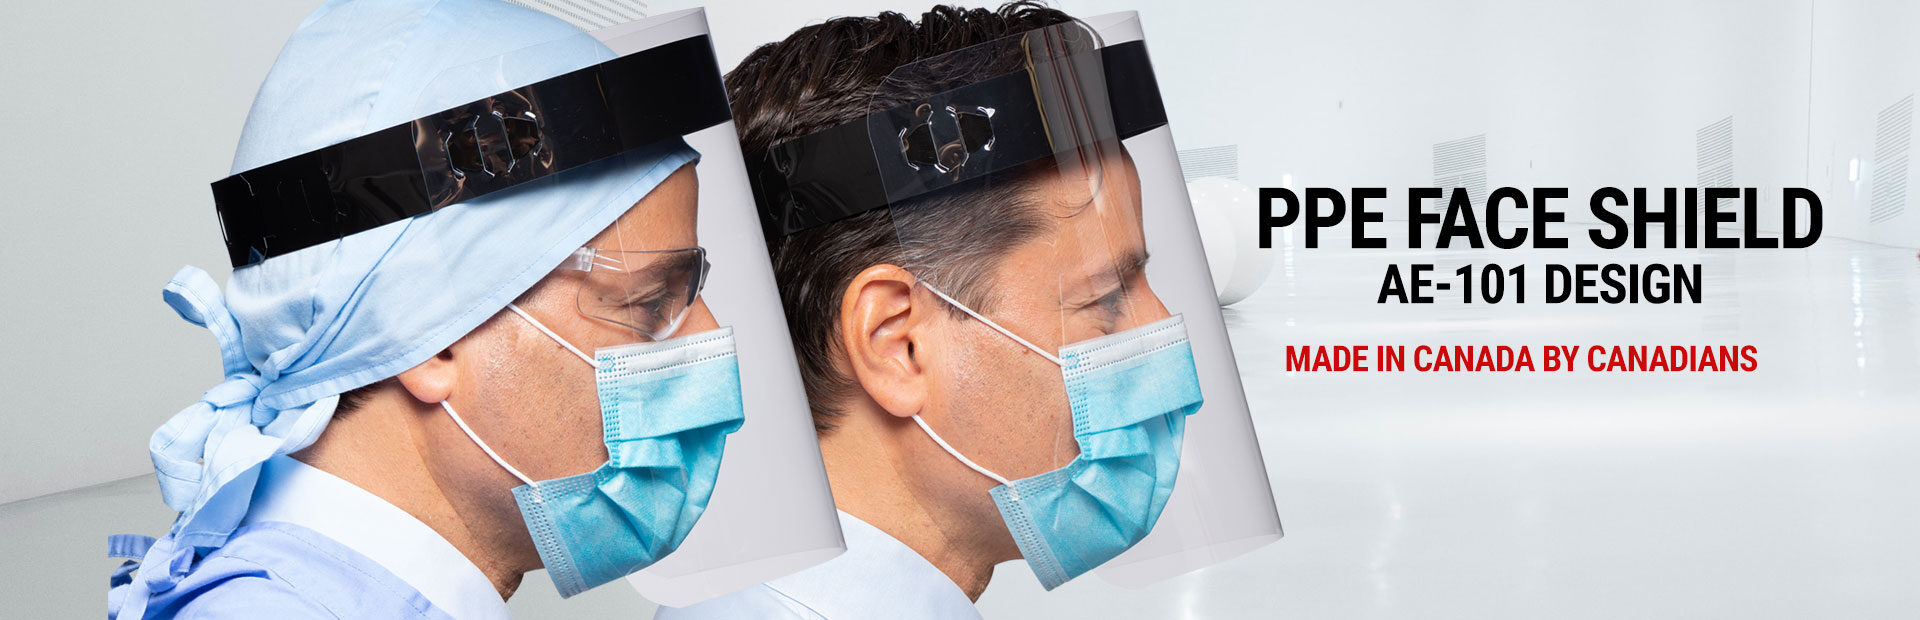 ae-101 ppe face shield